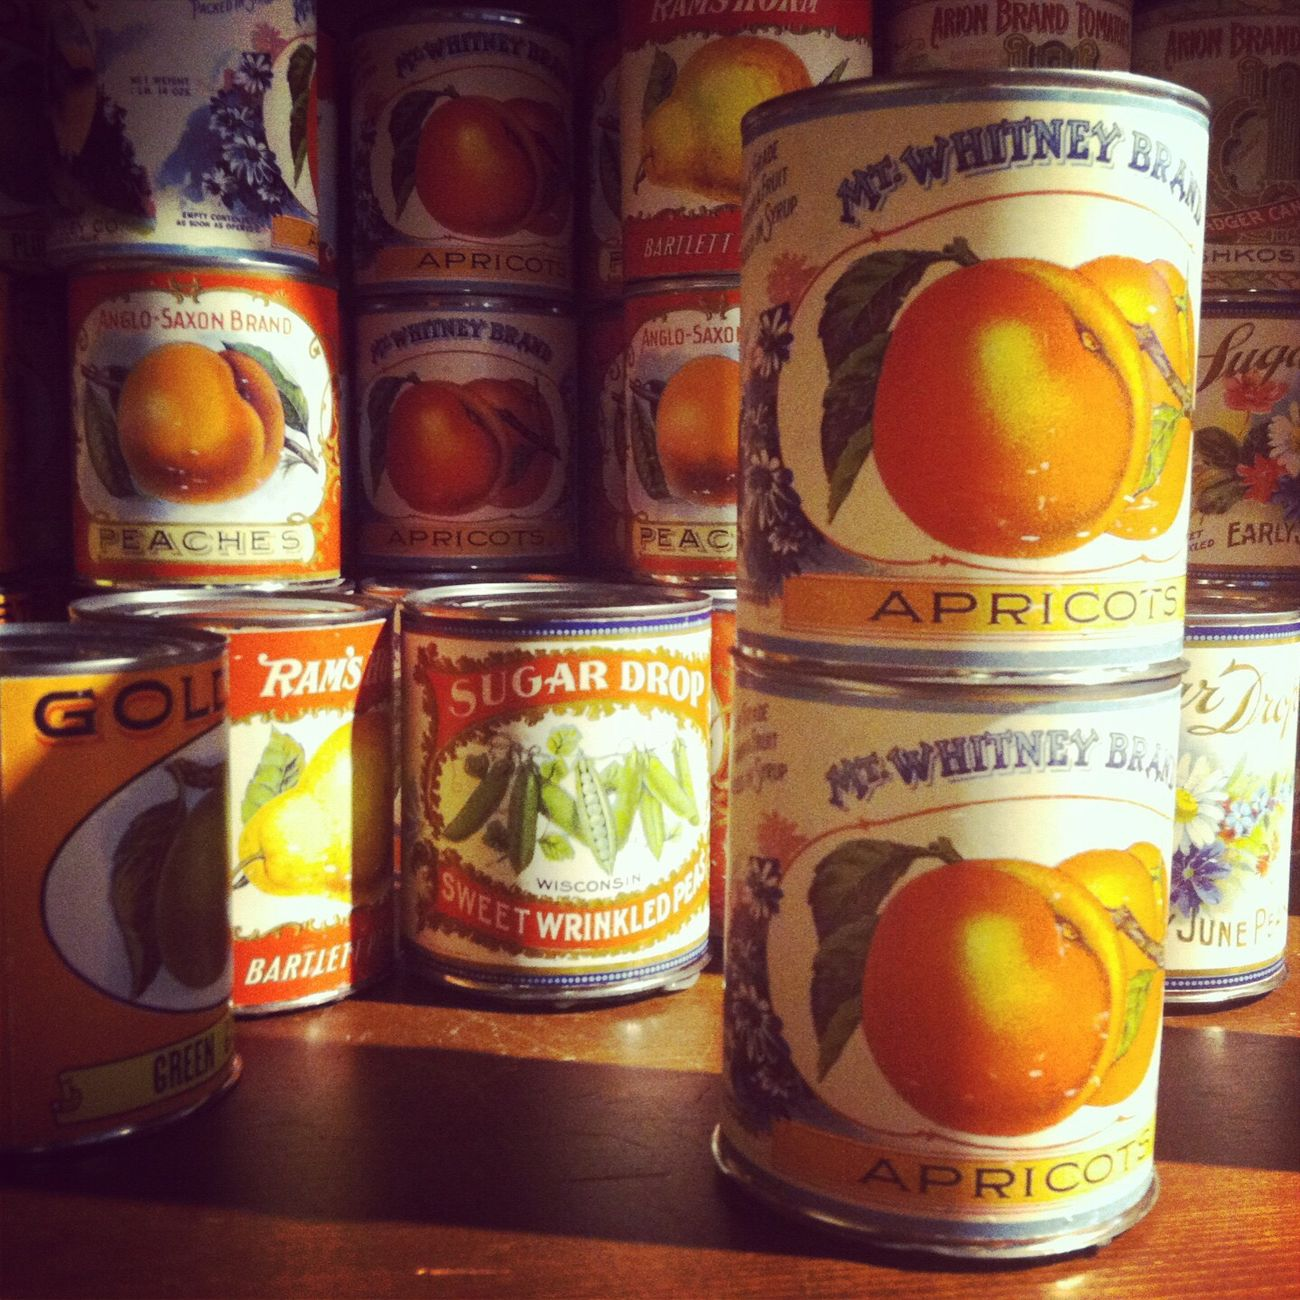 Apricot Cannedgoods Canned Food Food Grocery Store